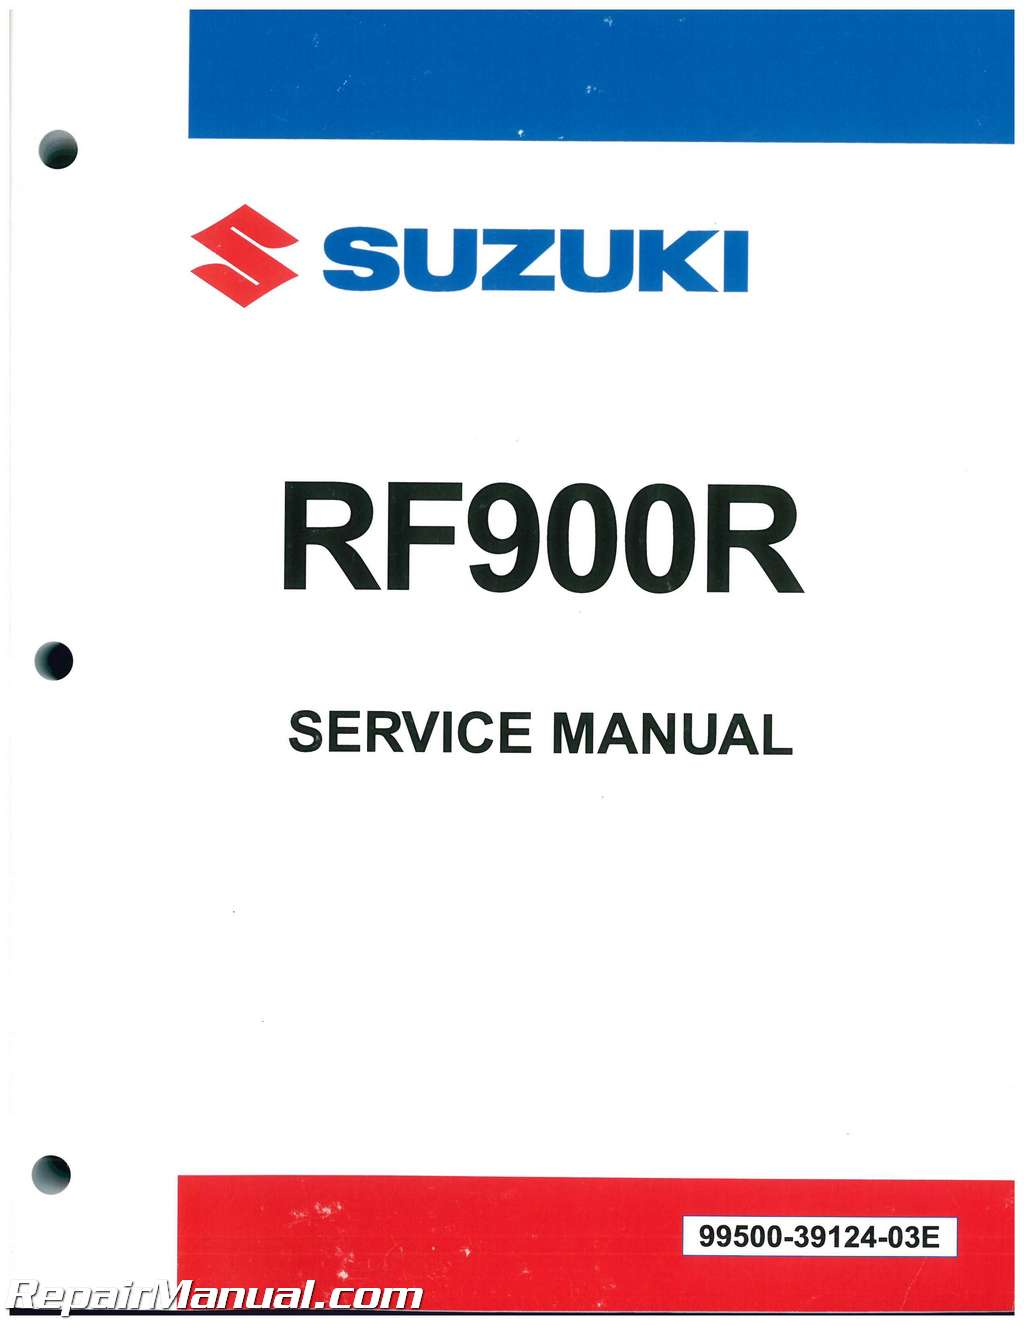 Suzuki Rv50 Motorcycle Service Manual Auto Electrical Wiring Diagram Dr250 1994